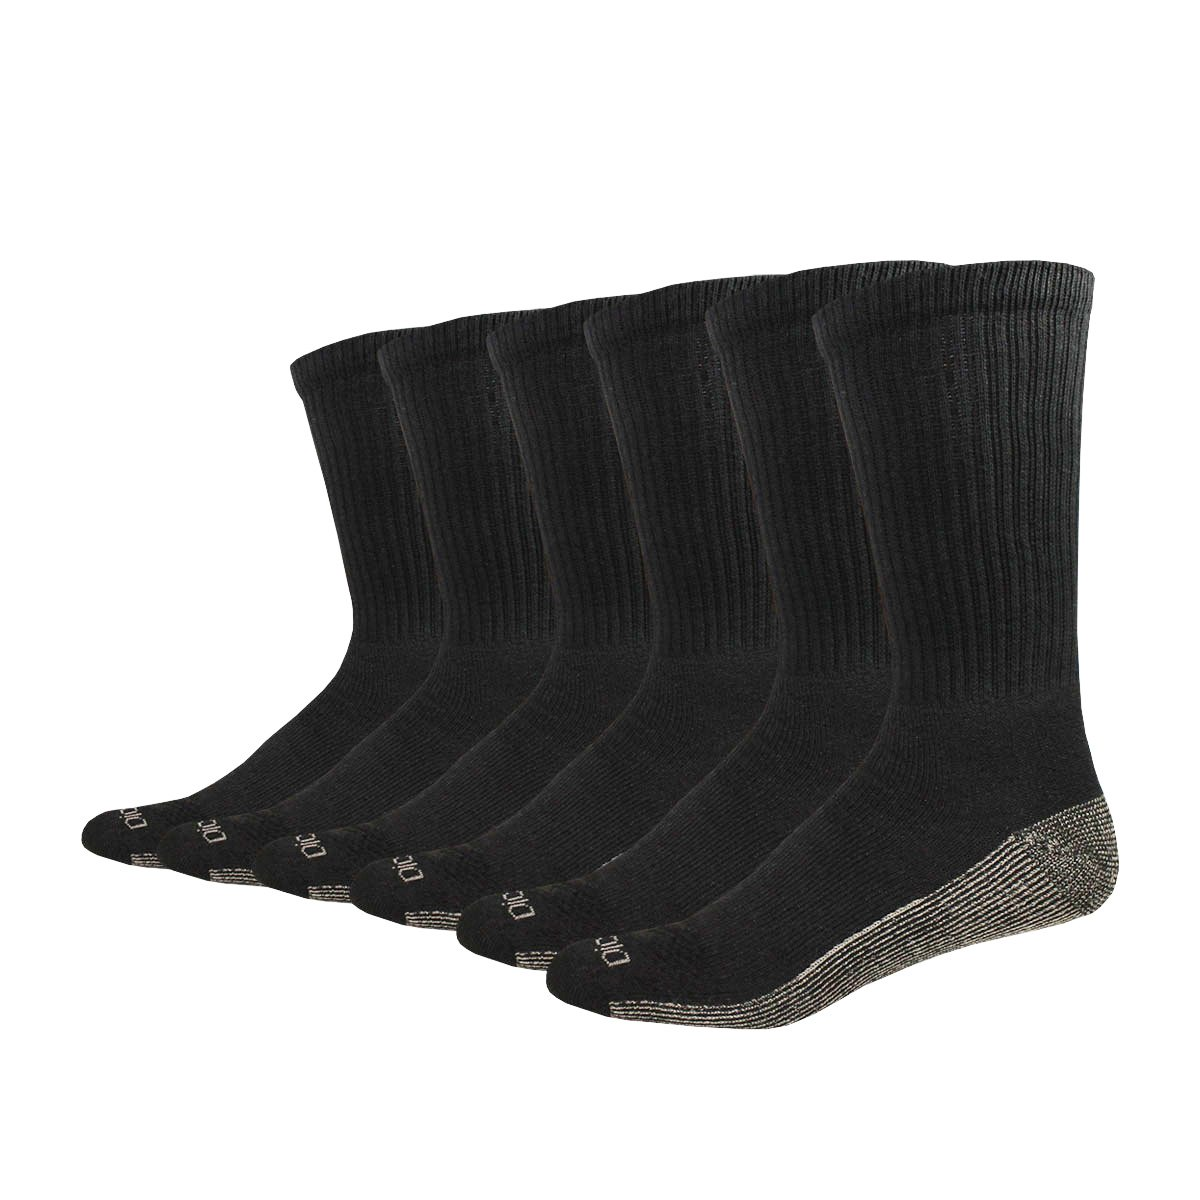 Dickies Men's Multi-Pack Dri-Tech Moisture Control Crew Socks, Black 6 Pack 6 Pack, Sock Size: 10-13/Shoe Size: 6-12